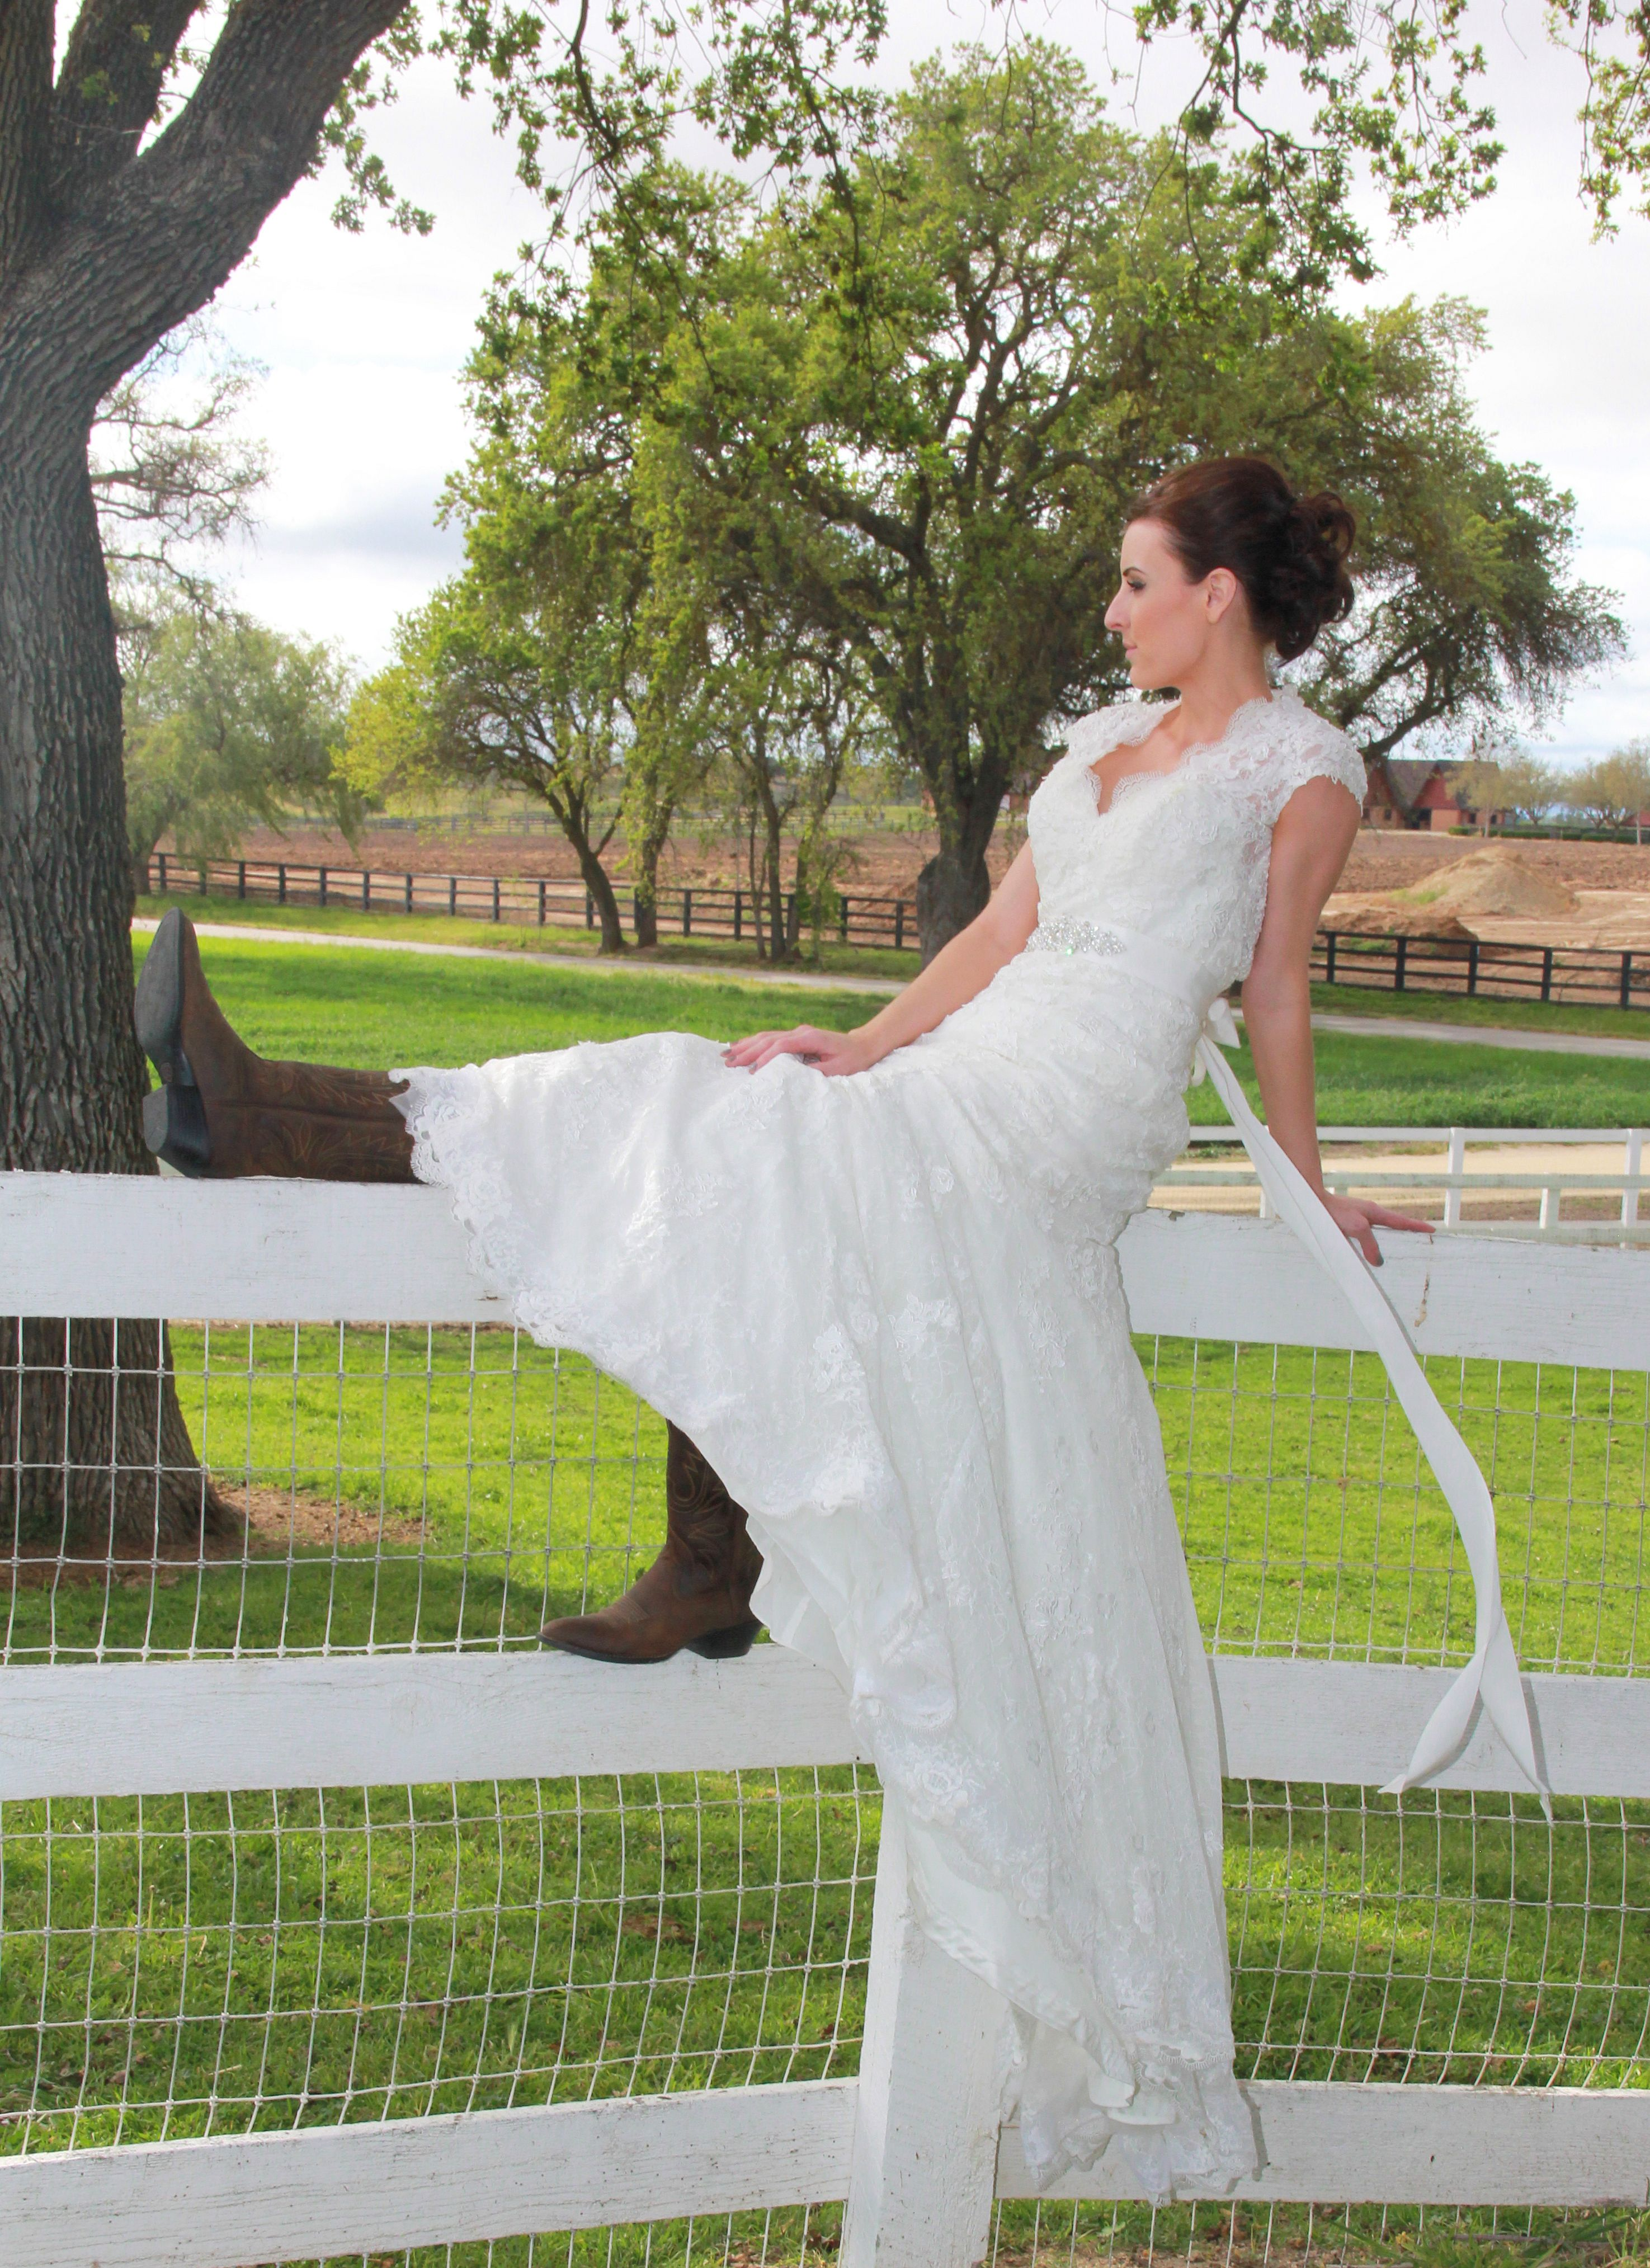 bride sitting on fence